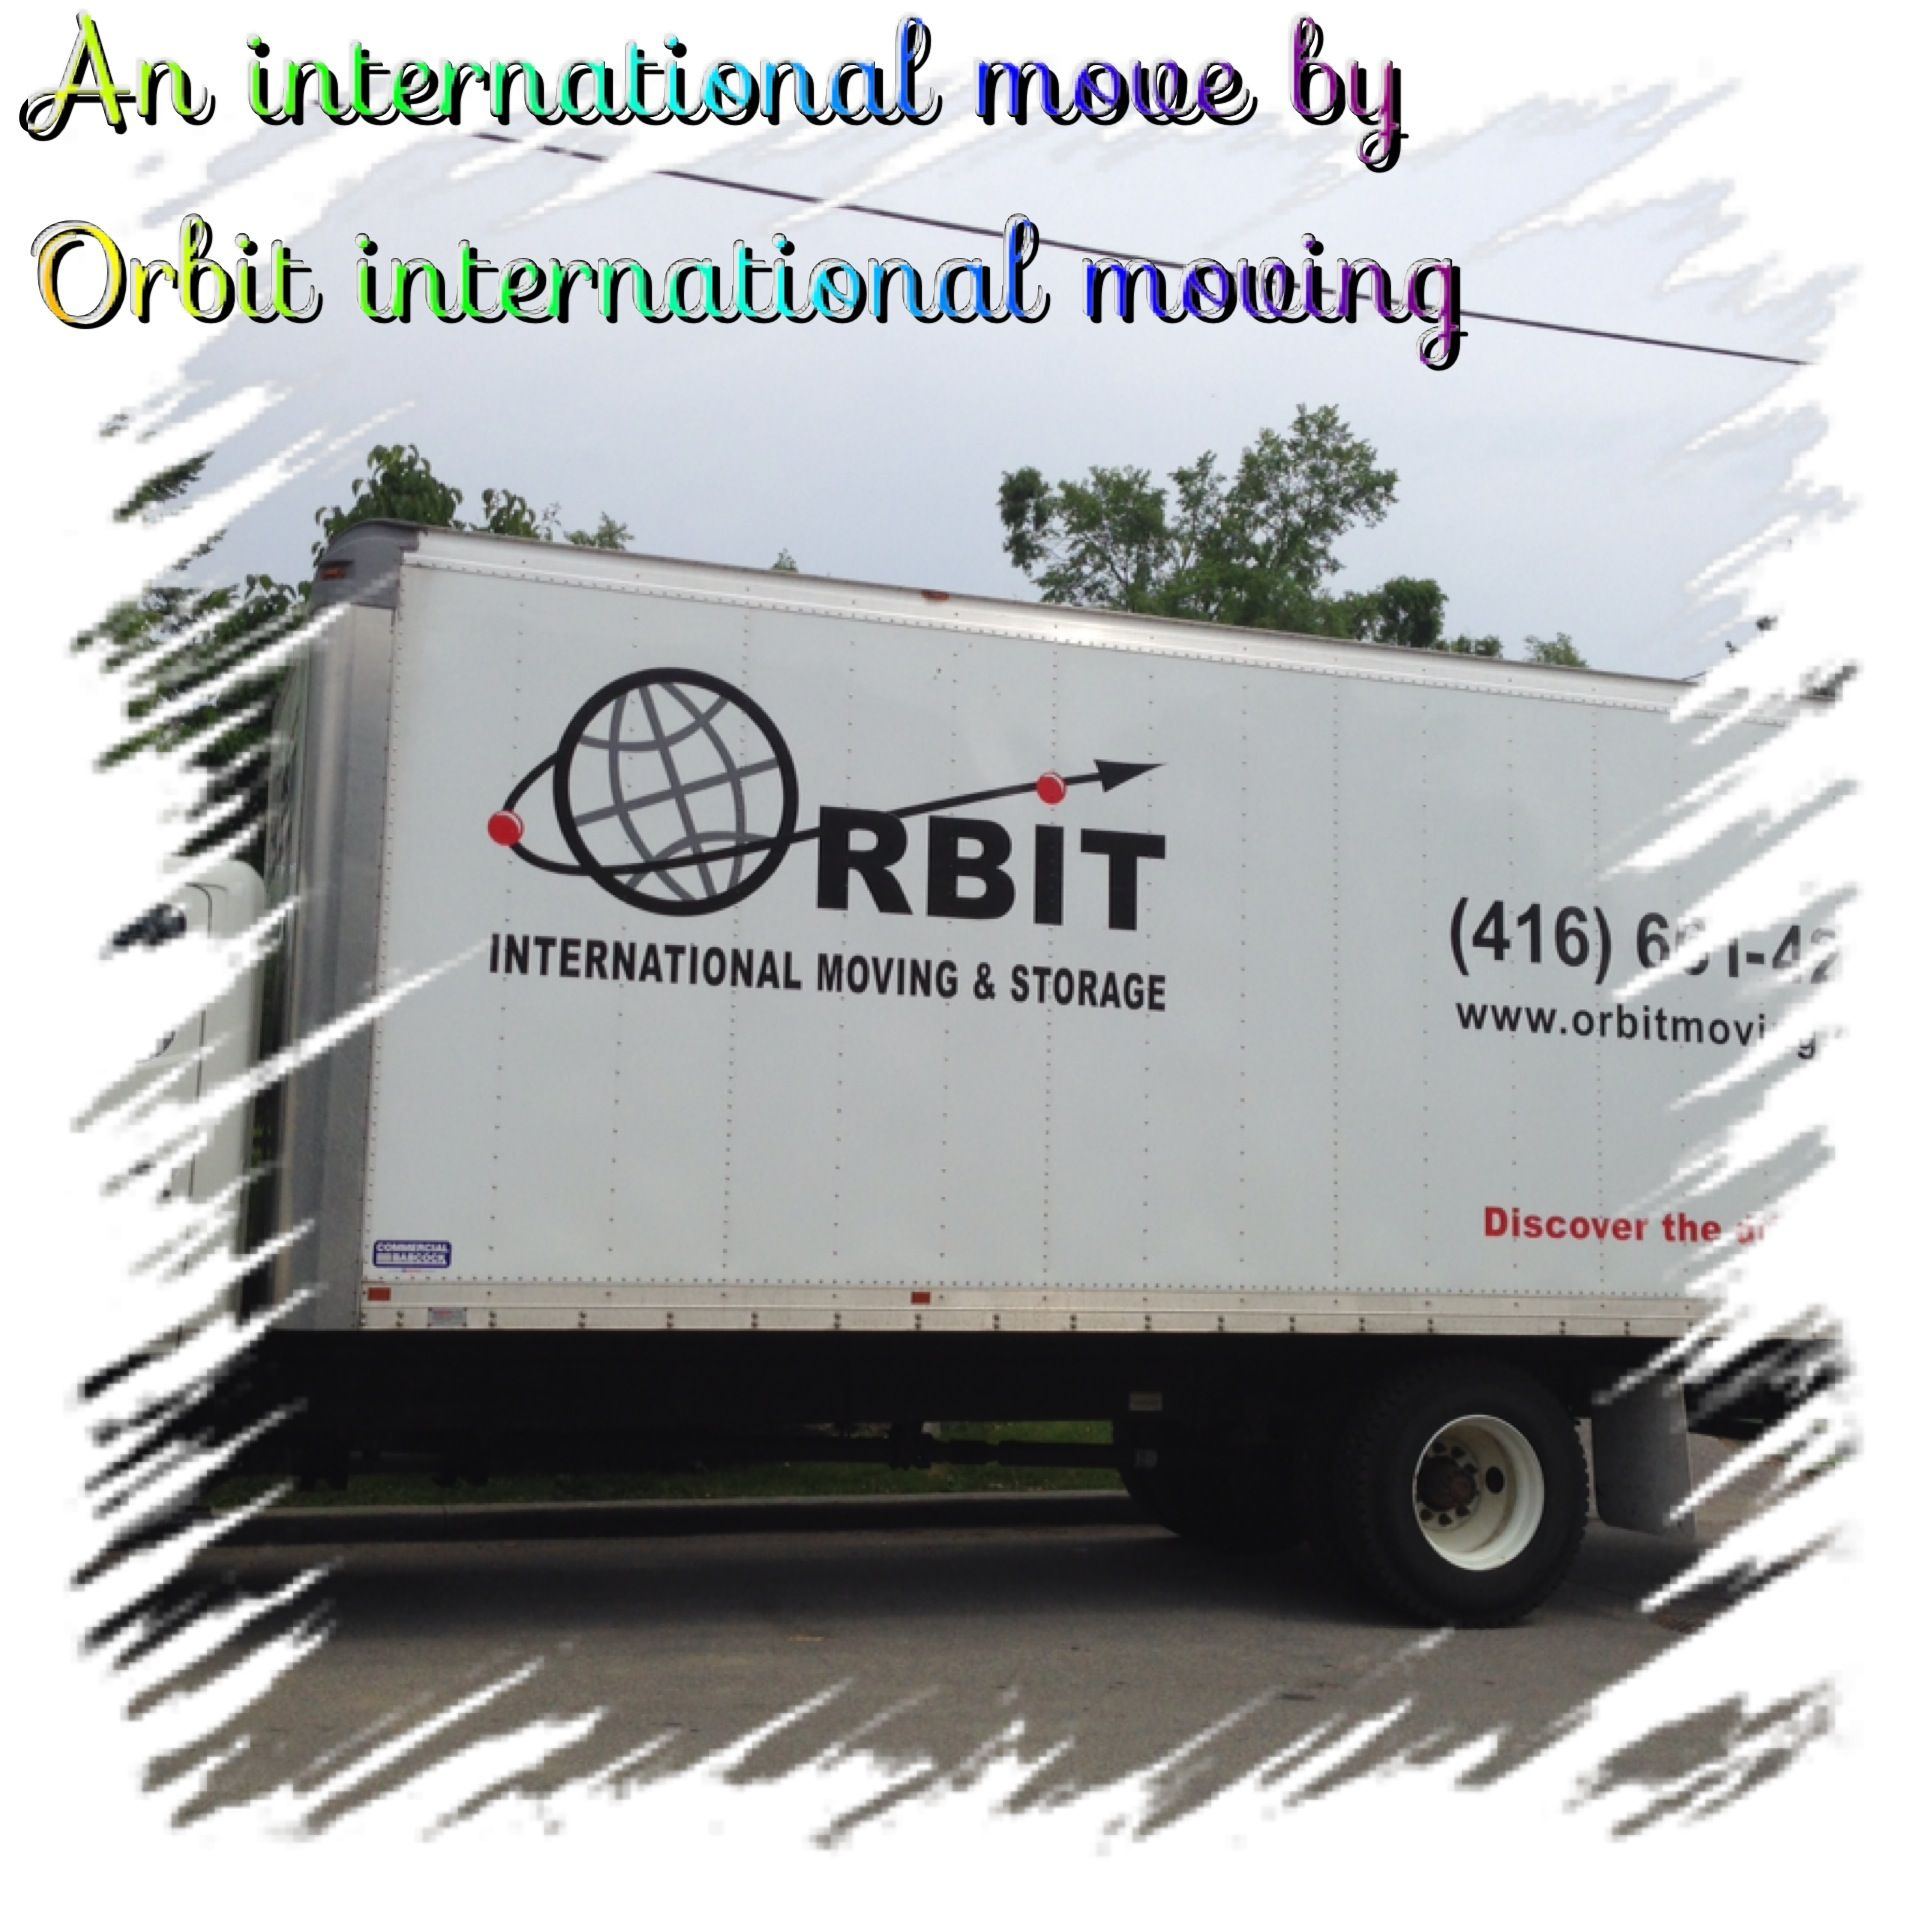 At Orbit International Moving We Take Pride In Our Friendly Service And Precise Attention